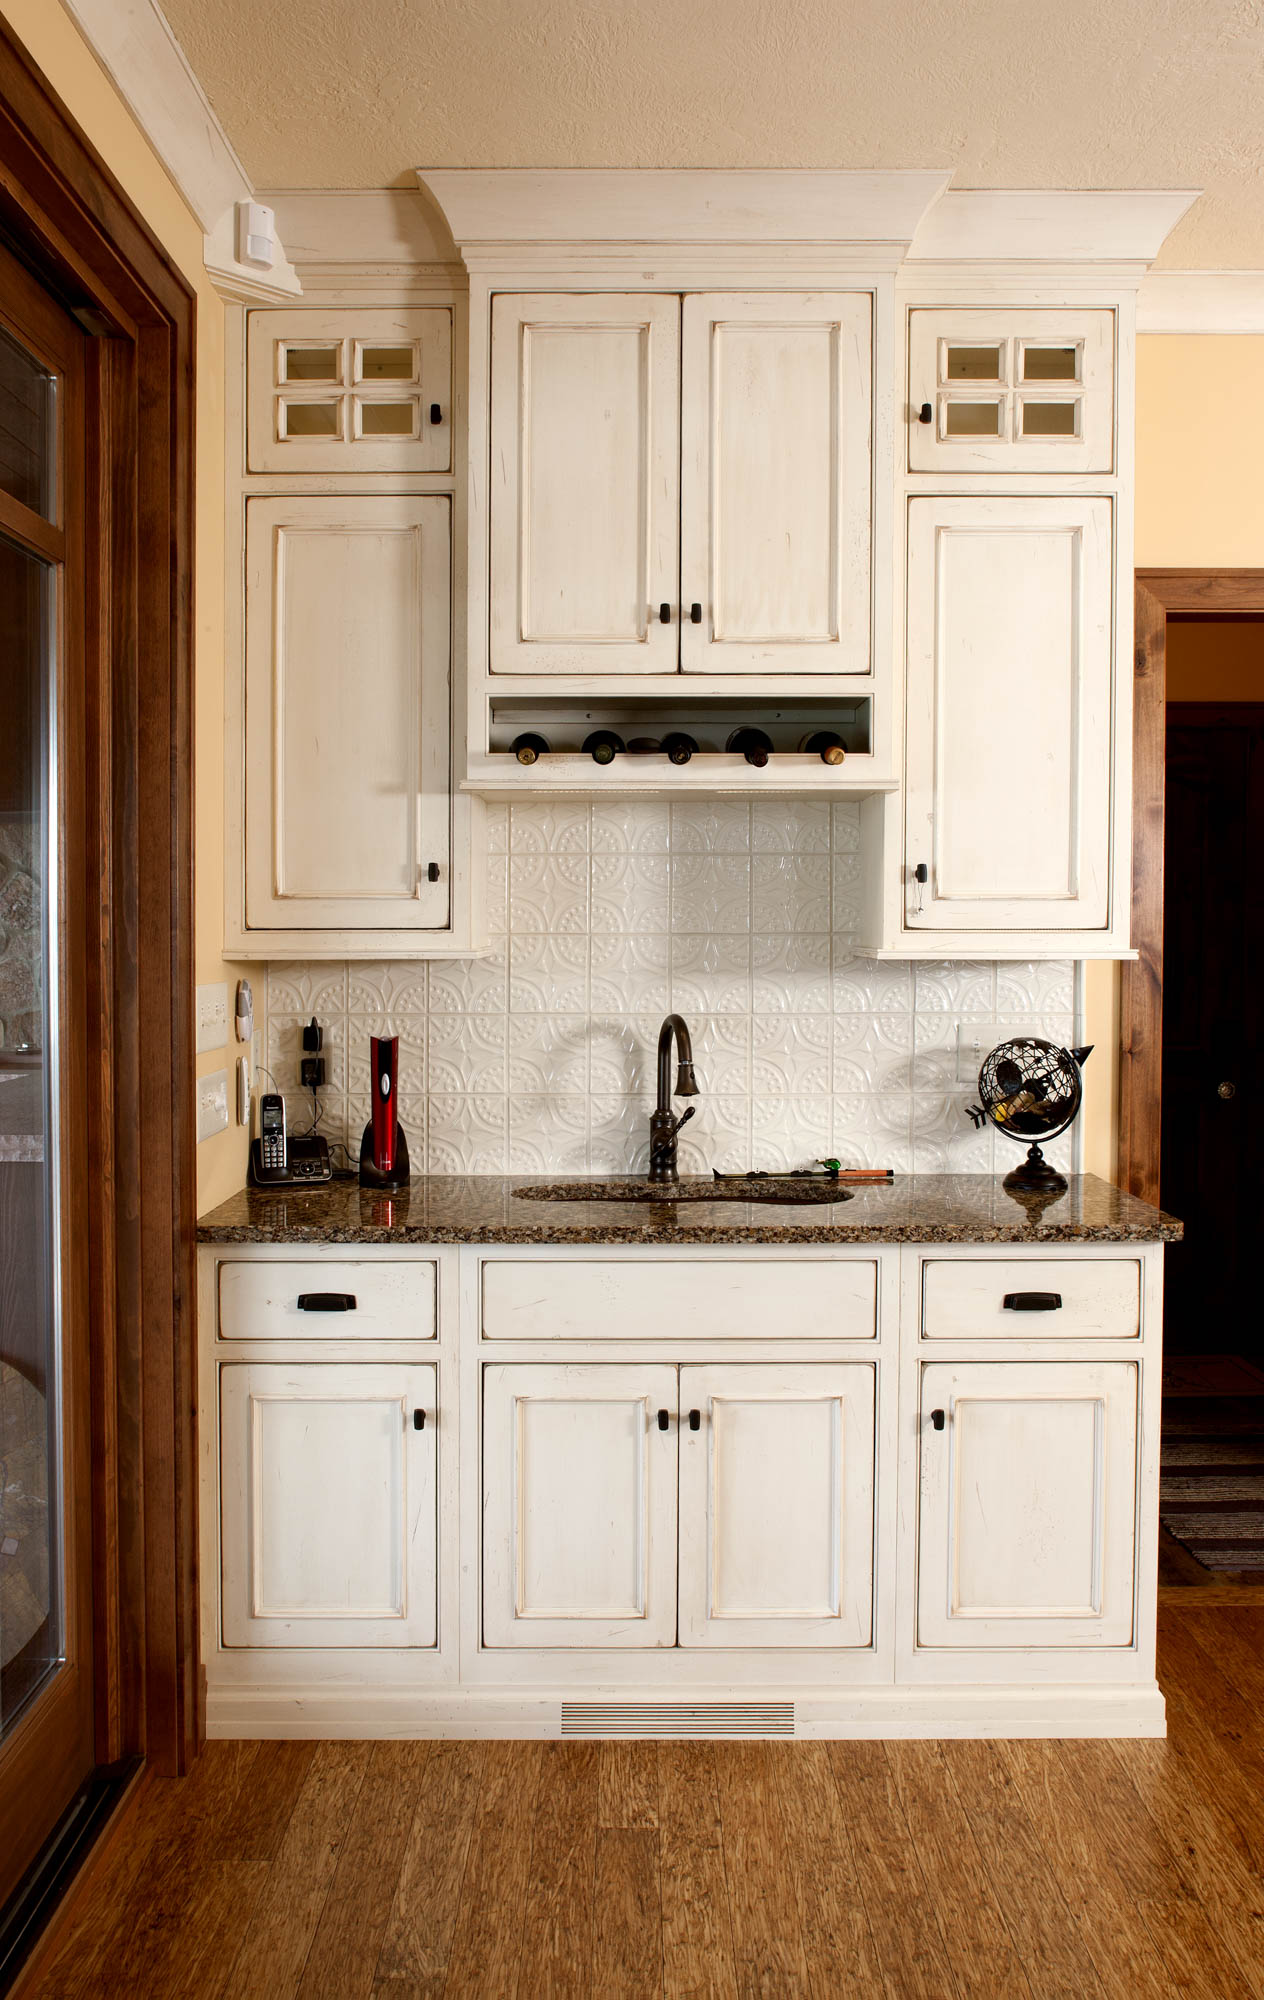 Painted kitchen wetbar in Vintage Soft Cream by Showplace Cabinetry